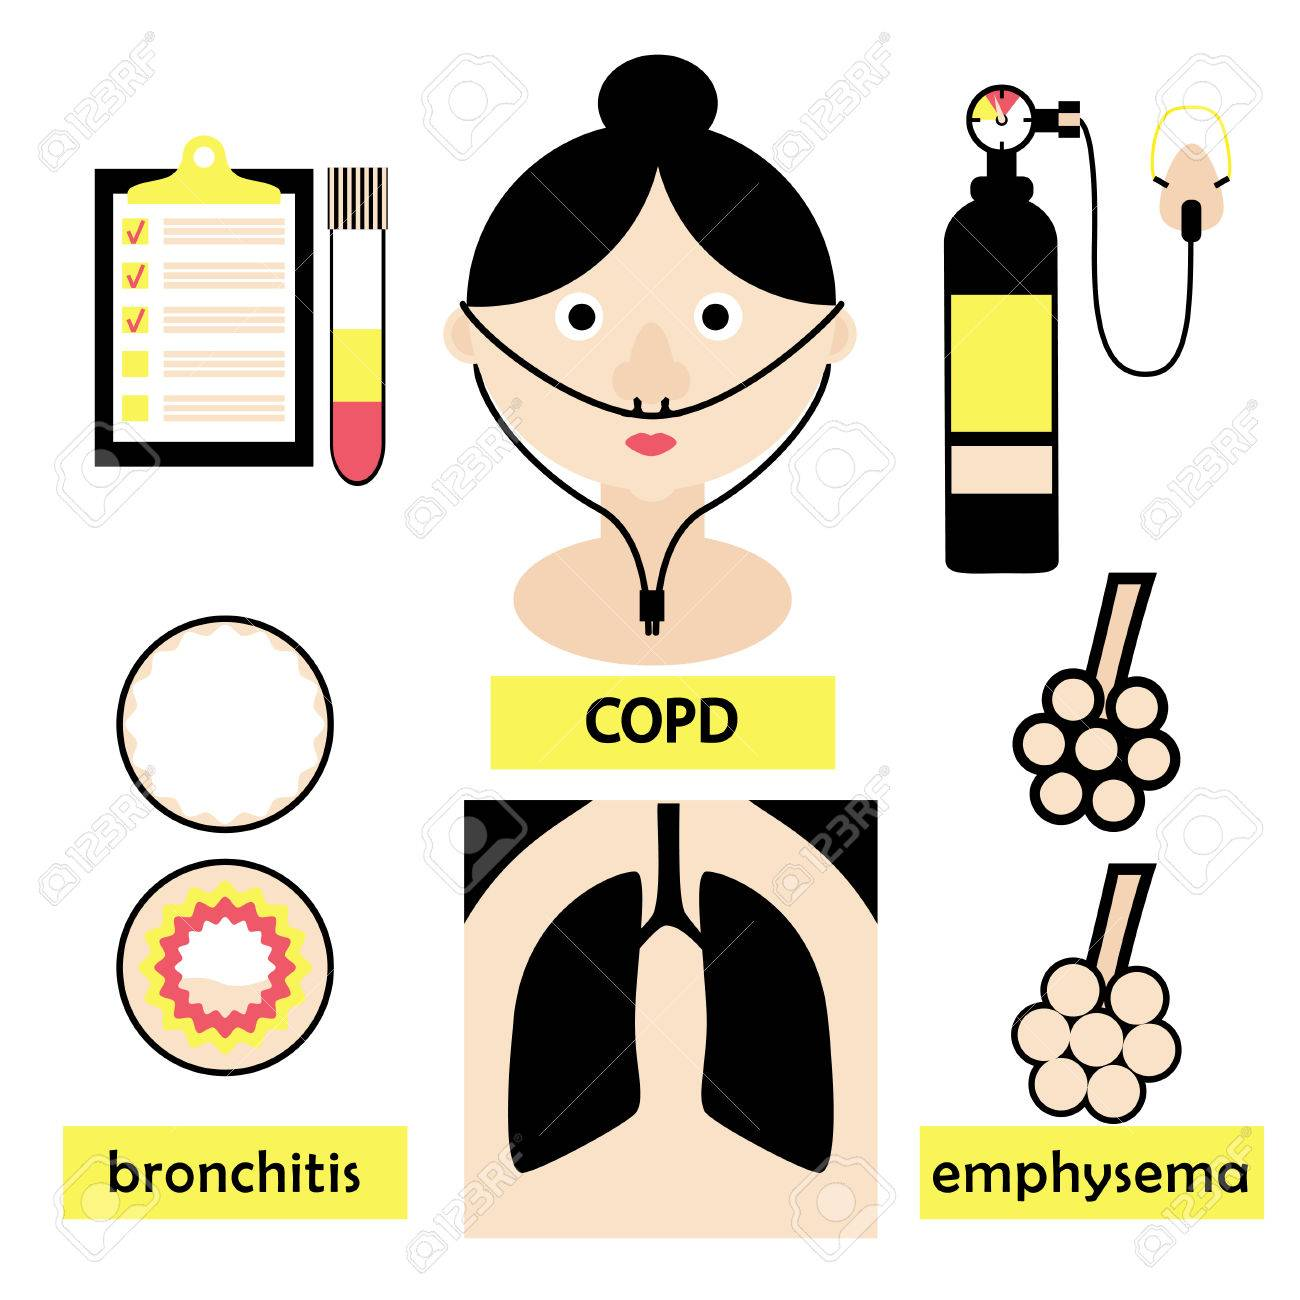 Copd Lung Disease Concept With A Patient, Main Anatomy Features ...